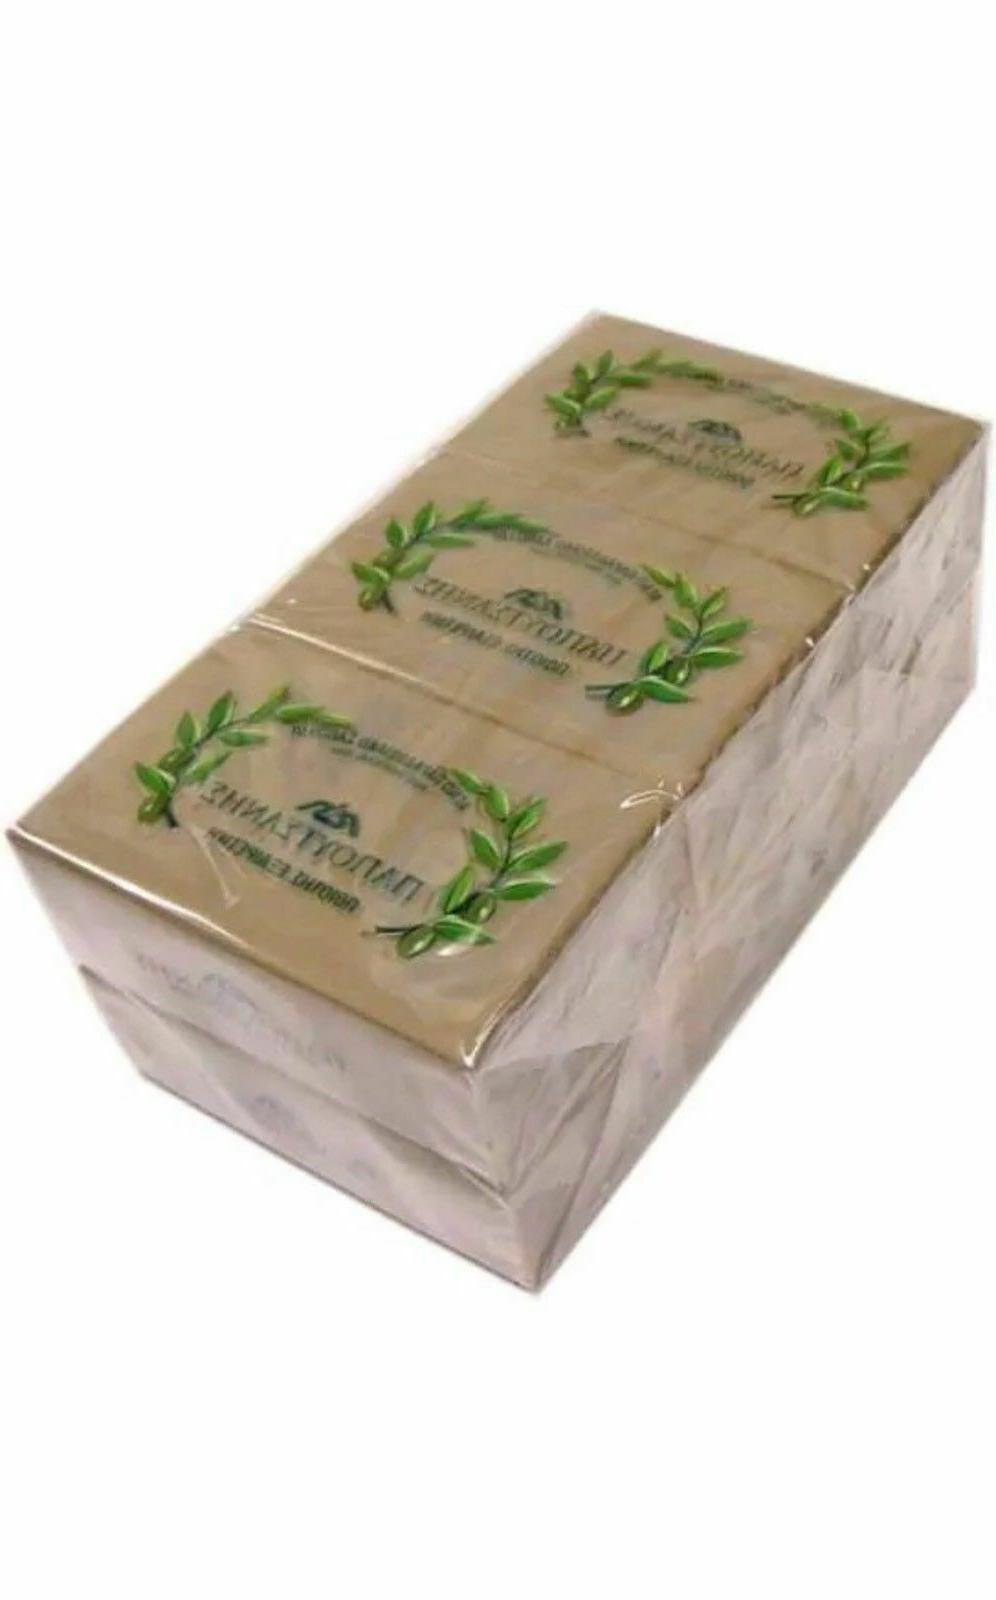 pure greek olive oil soap bars of